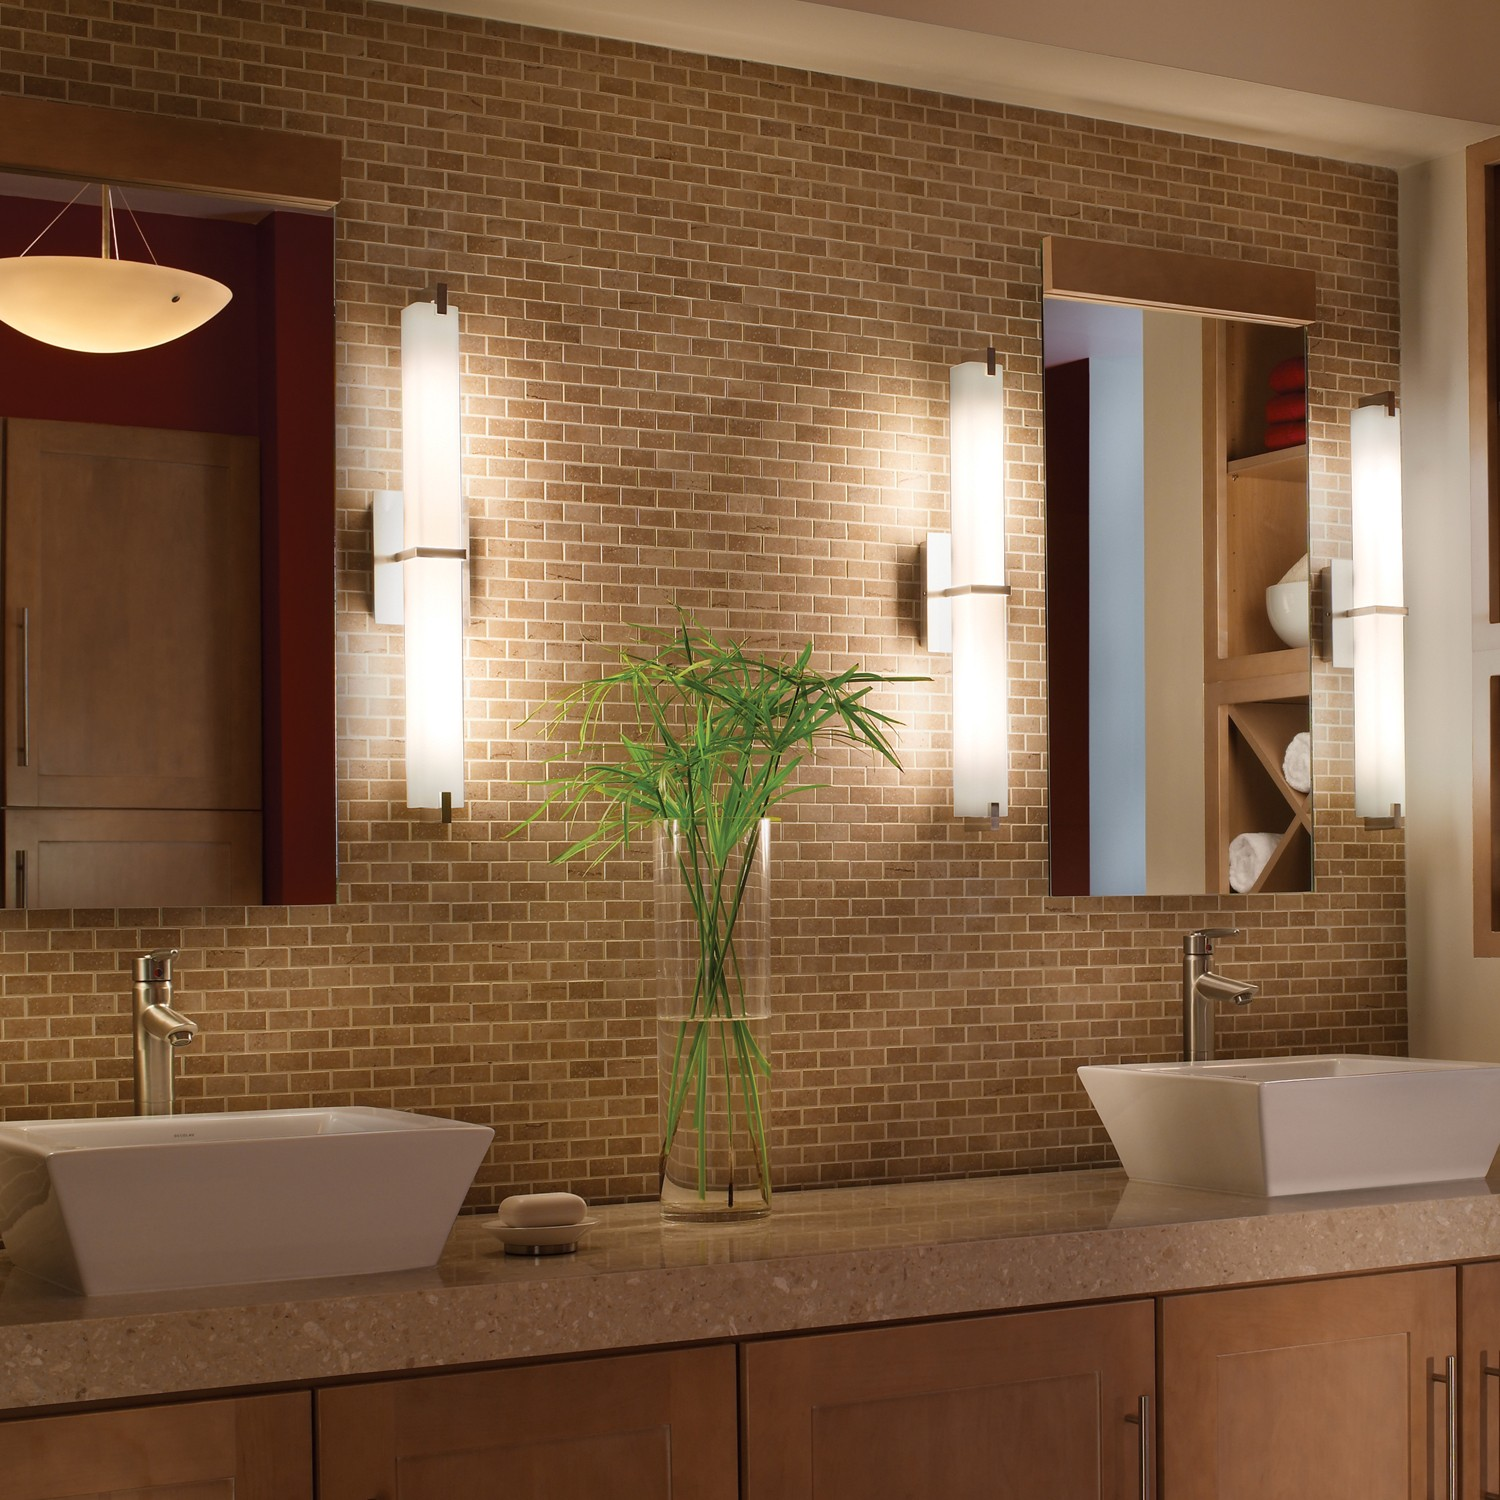 Great Bathroom Vanity Lighting how to light a bathroom vanity | design necessities lighting